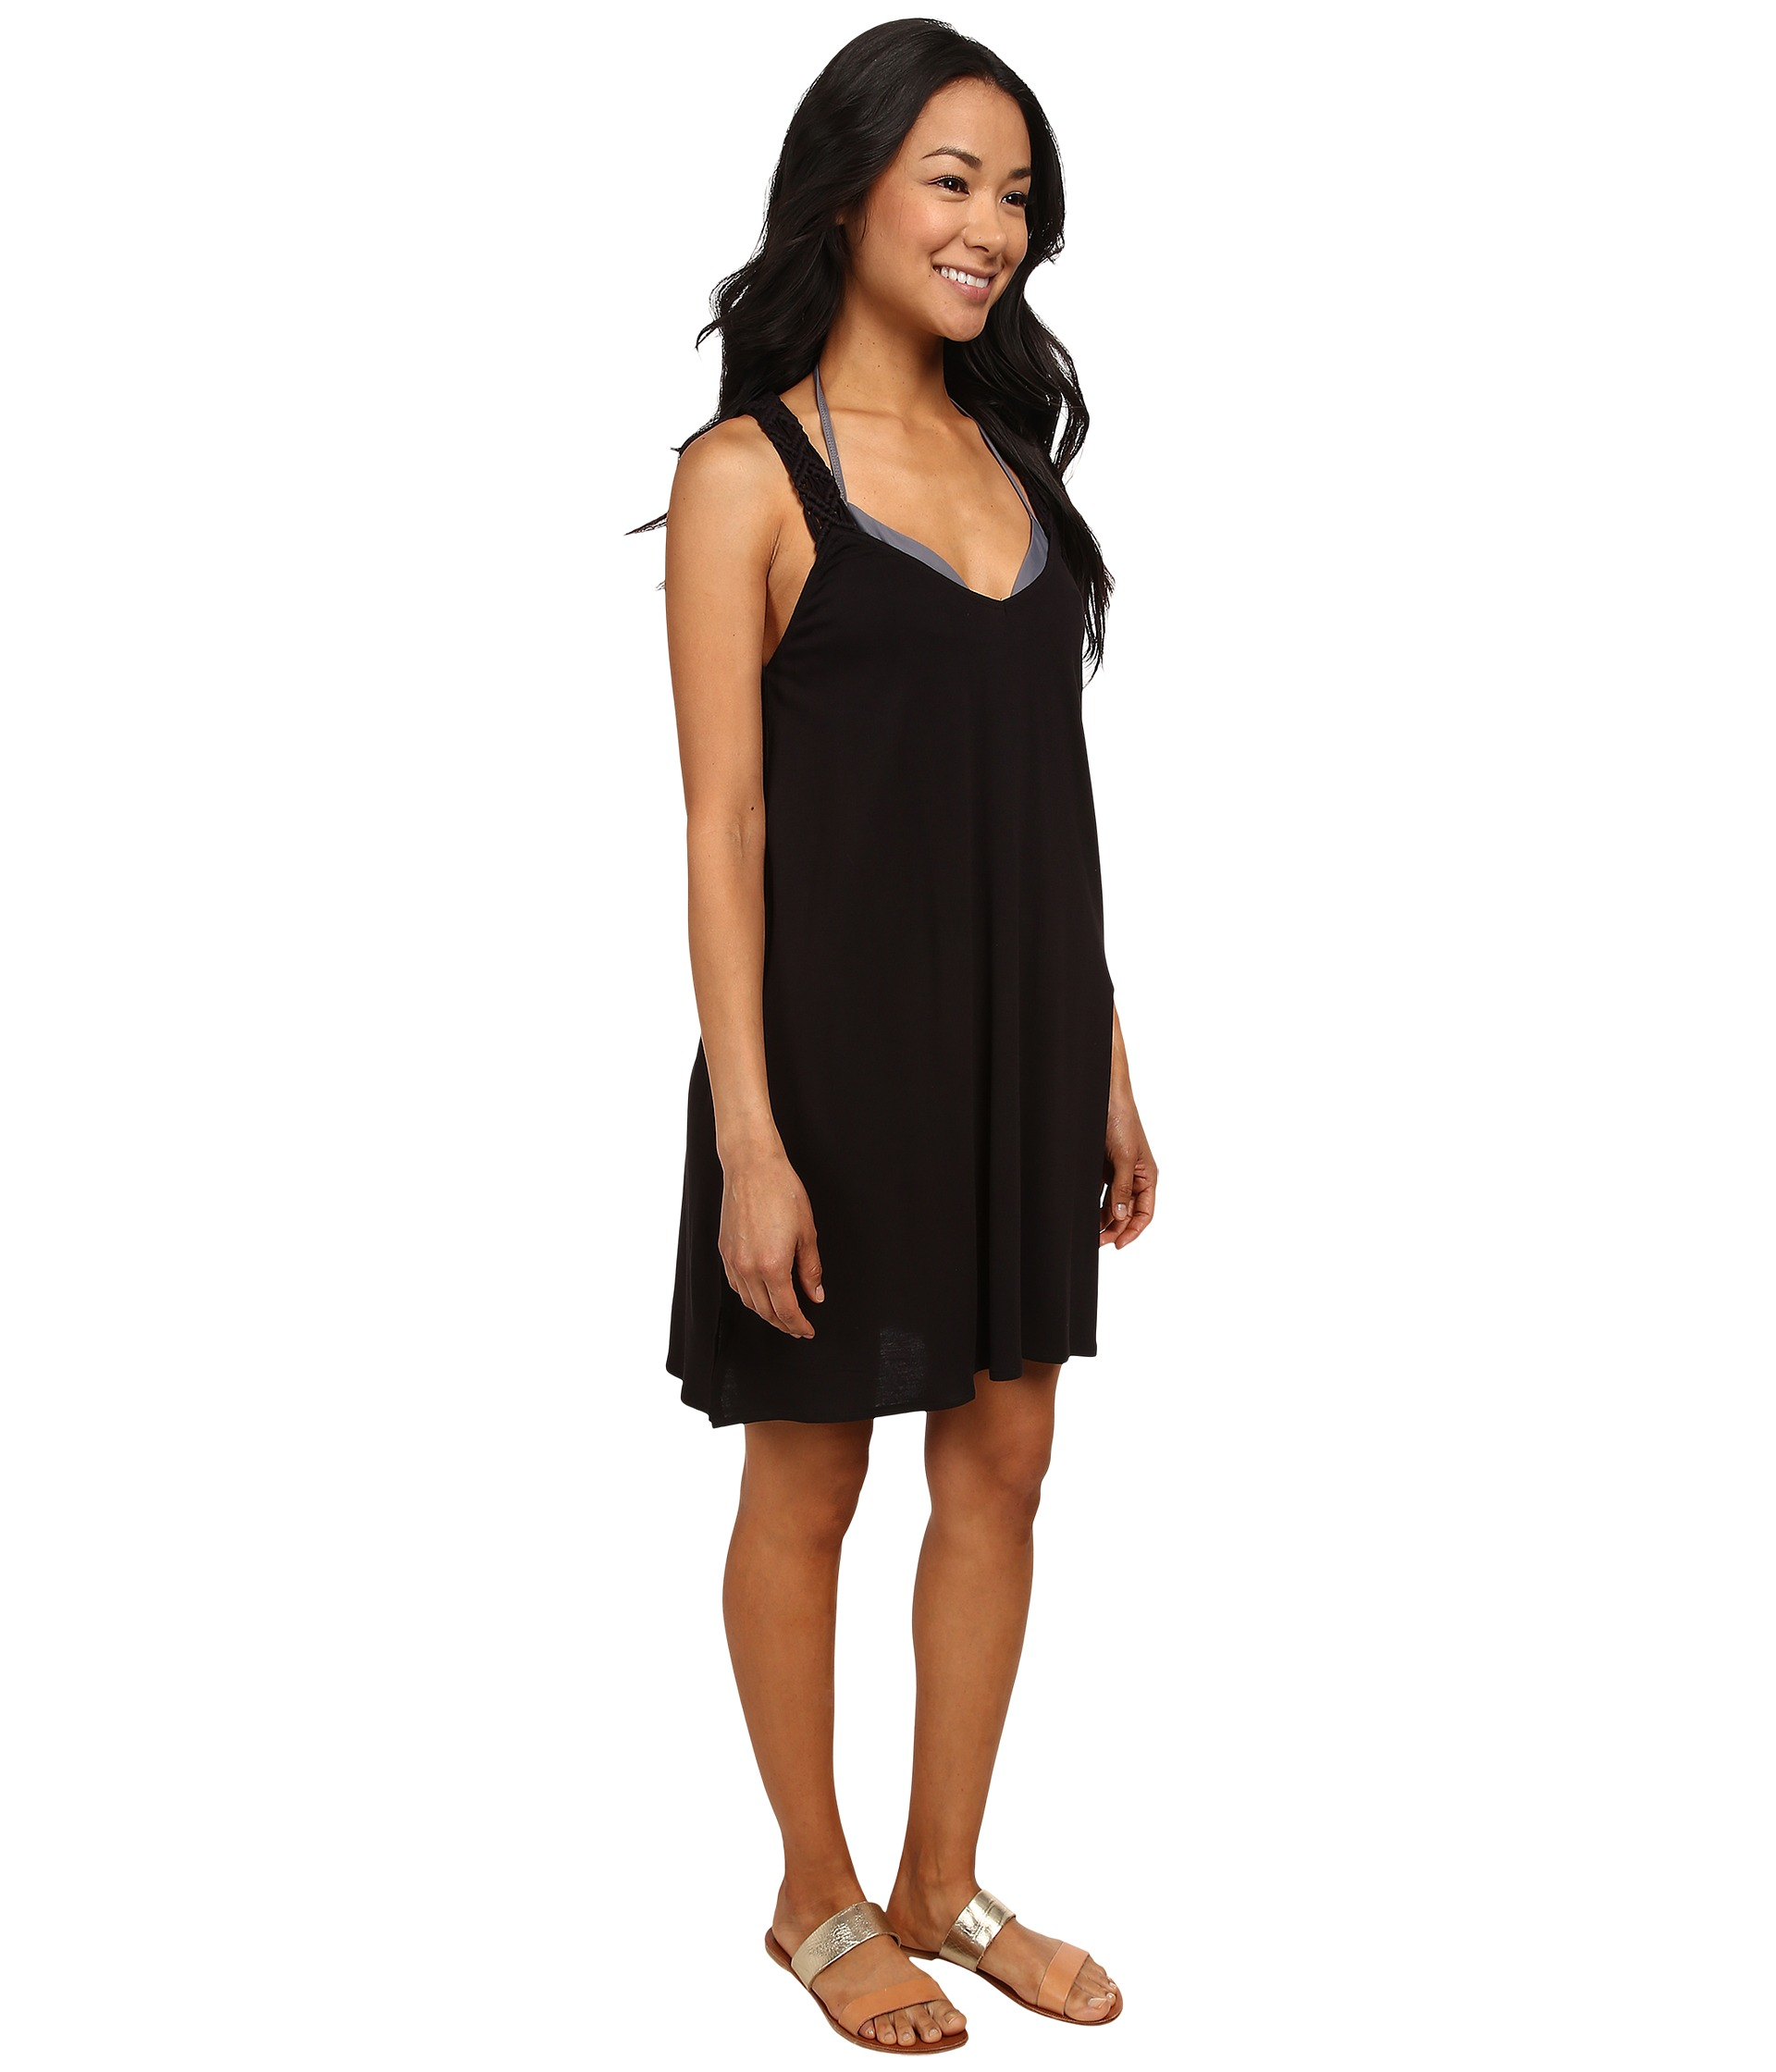 Terry cloth swimsuit cover up Women s Swimwear